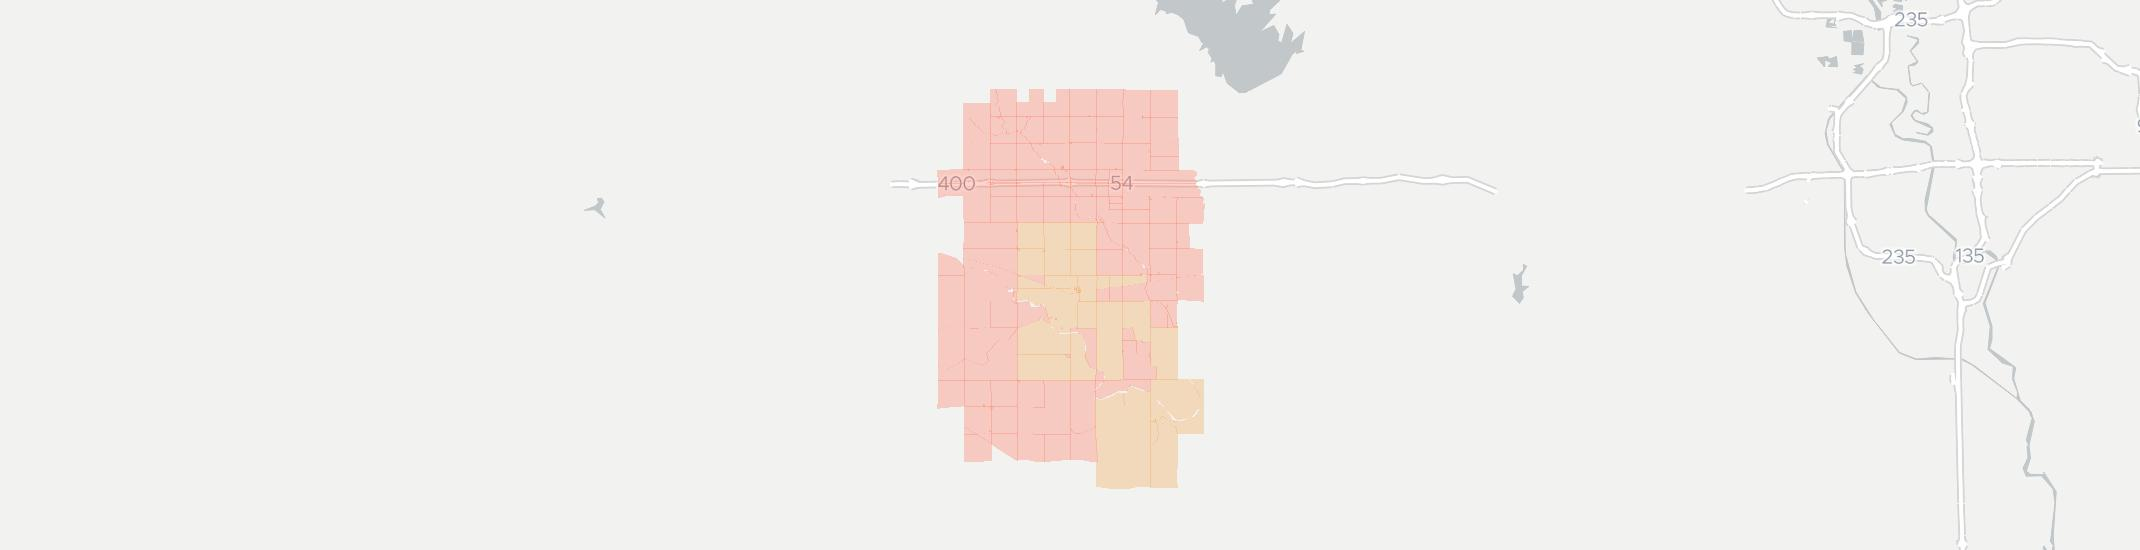 Murdock Internet Competition Map. Click for interactive map.